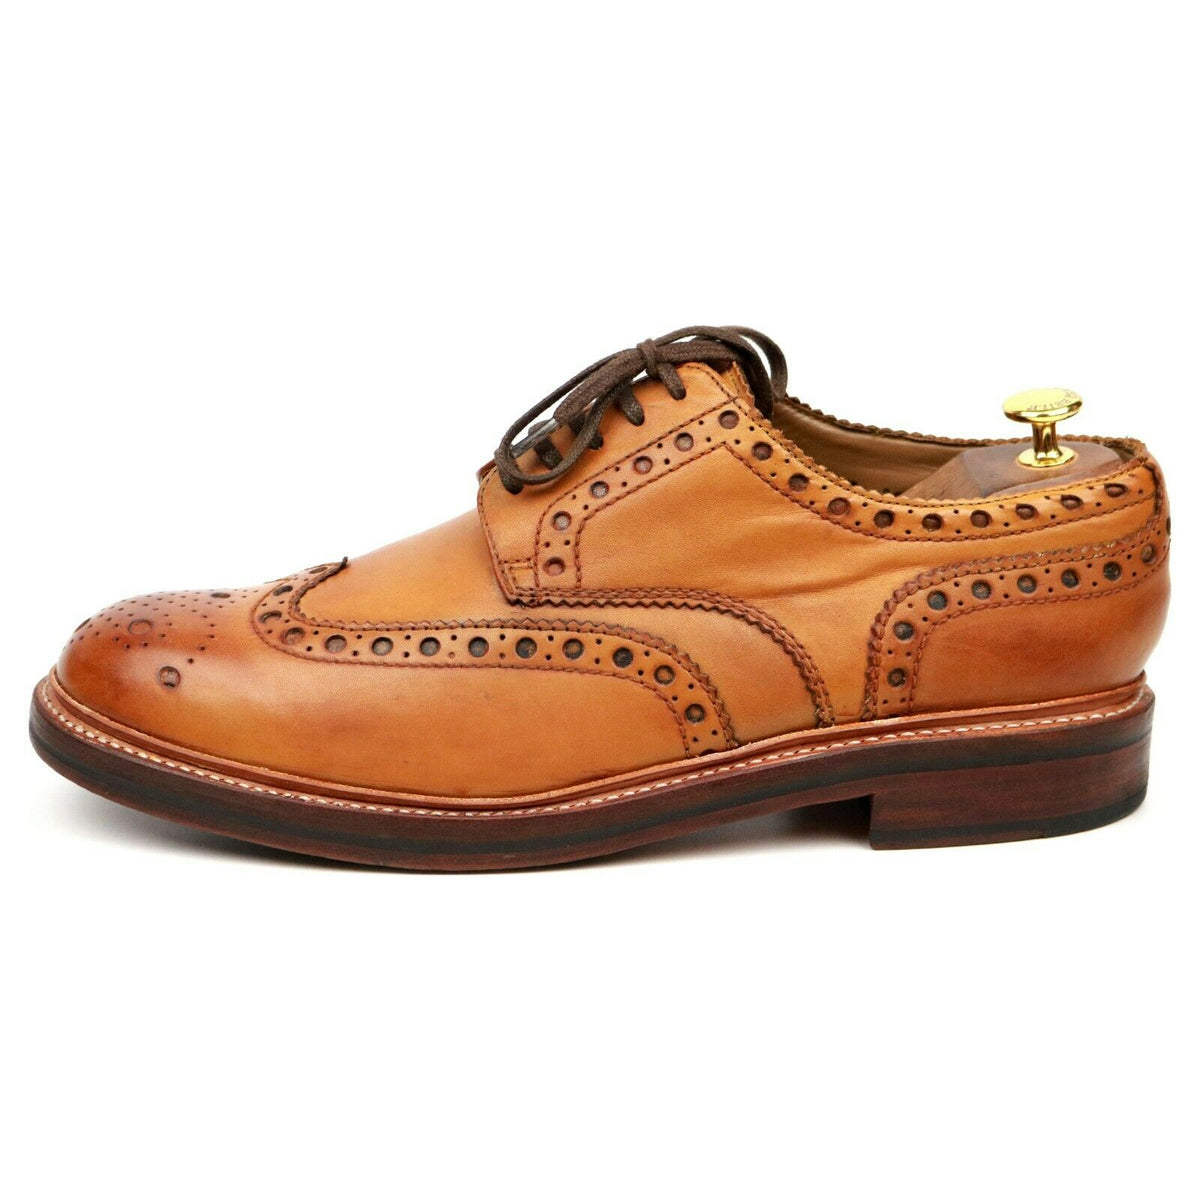 Grenson 'Archie' Tan Brown Leather Derby Brogues UK 10.5 G